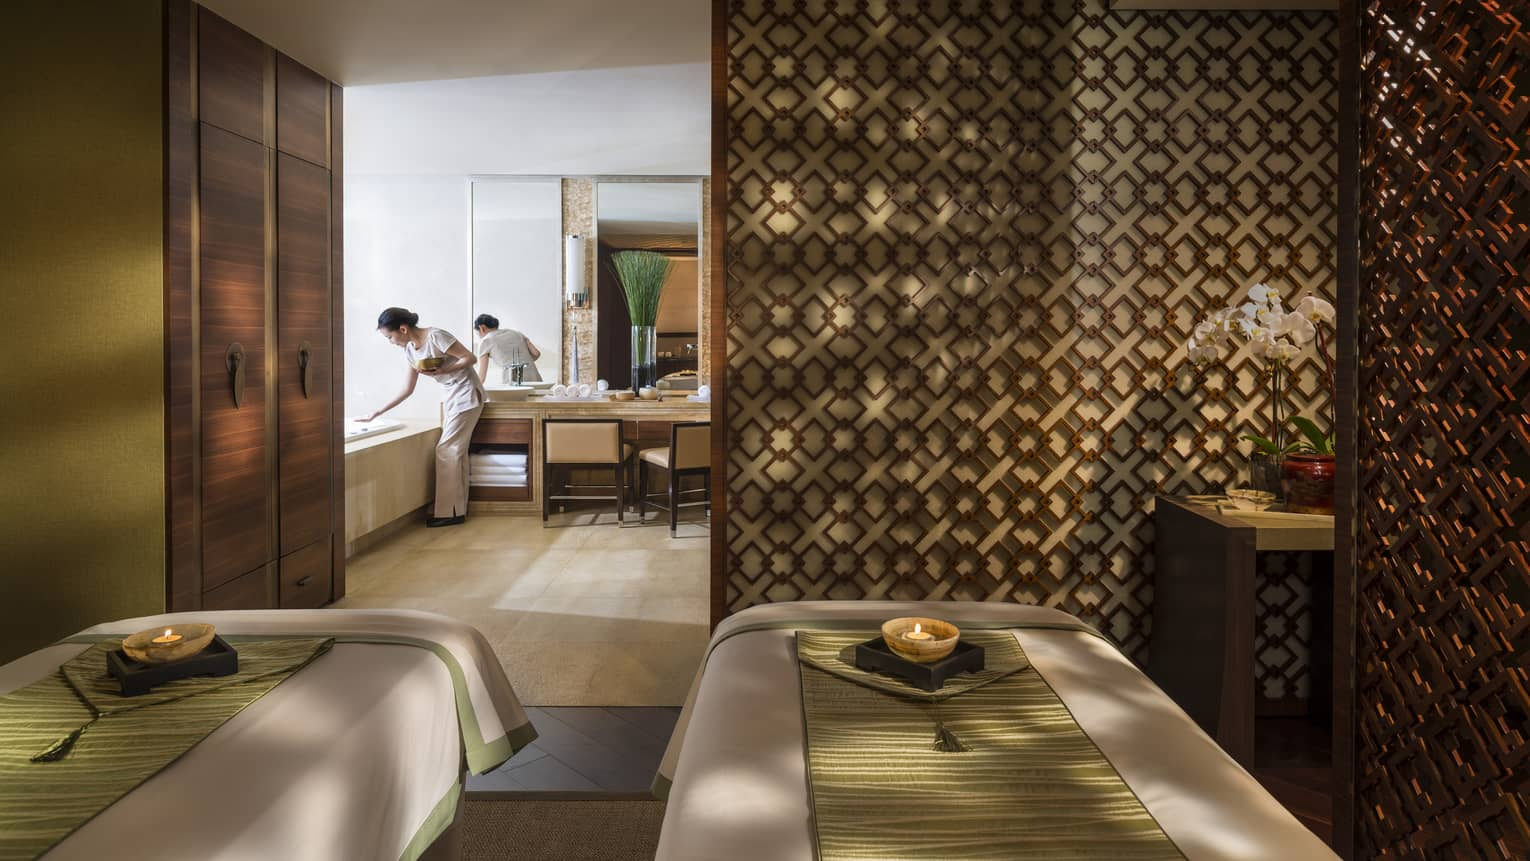 Couples massage beds side-by-side in spa room with candles, wood detail wall, staff preparing bath